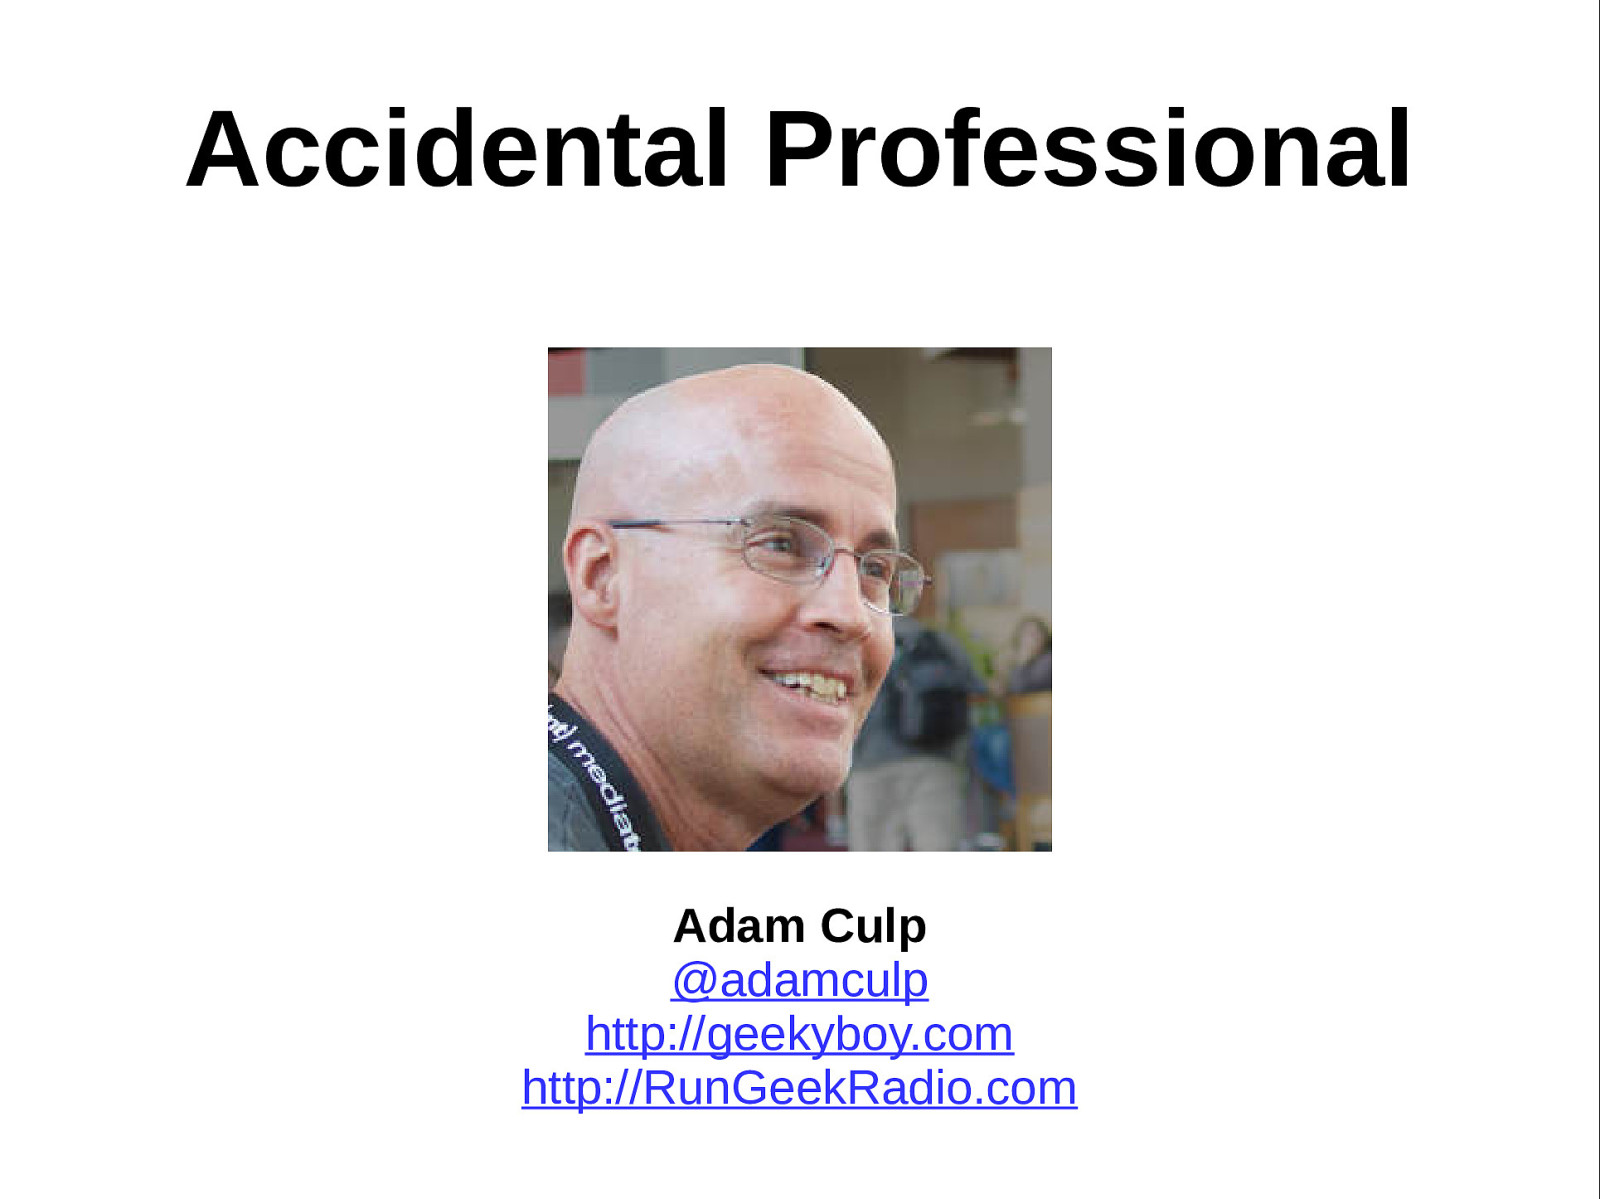 The Accidental Professional